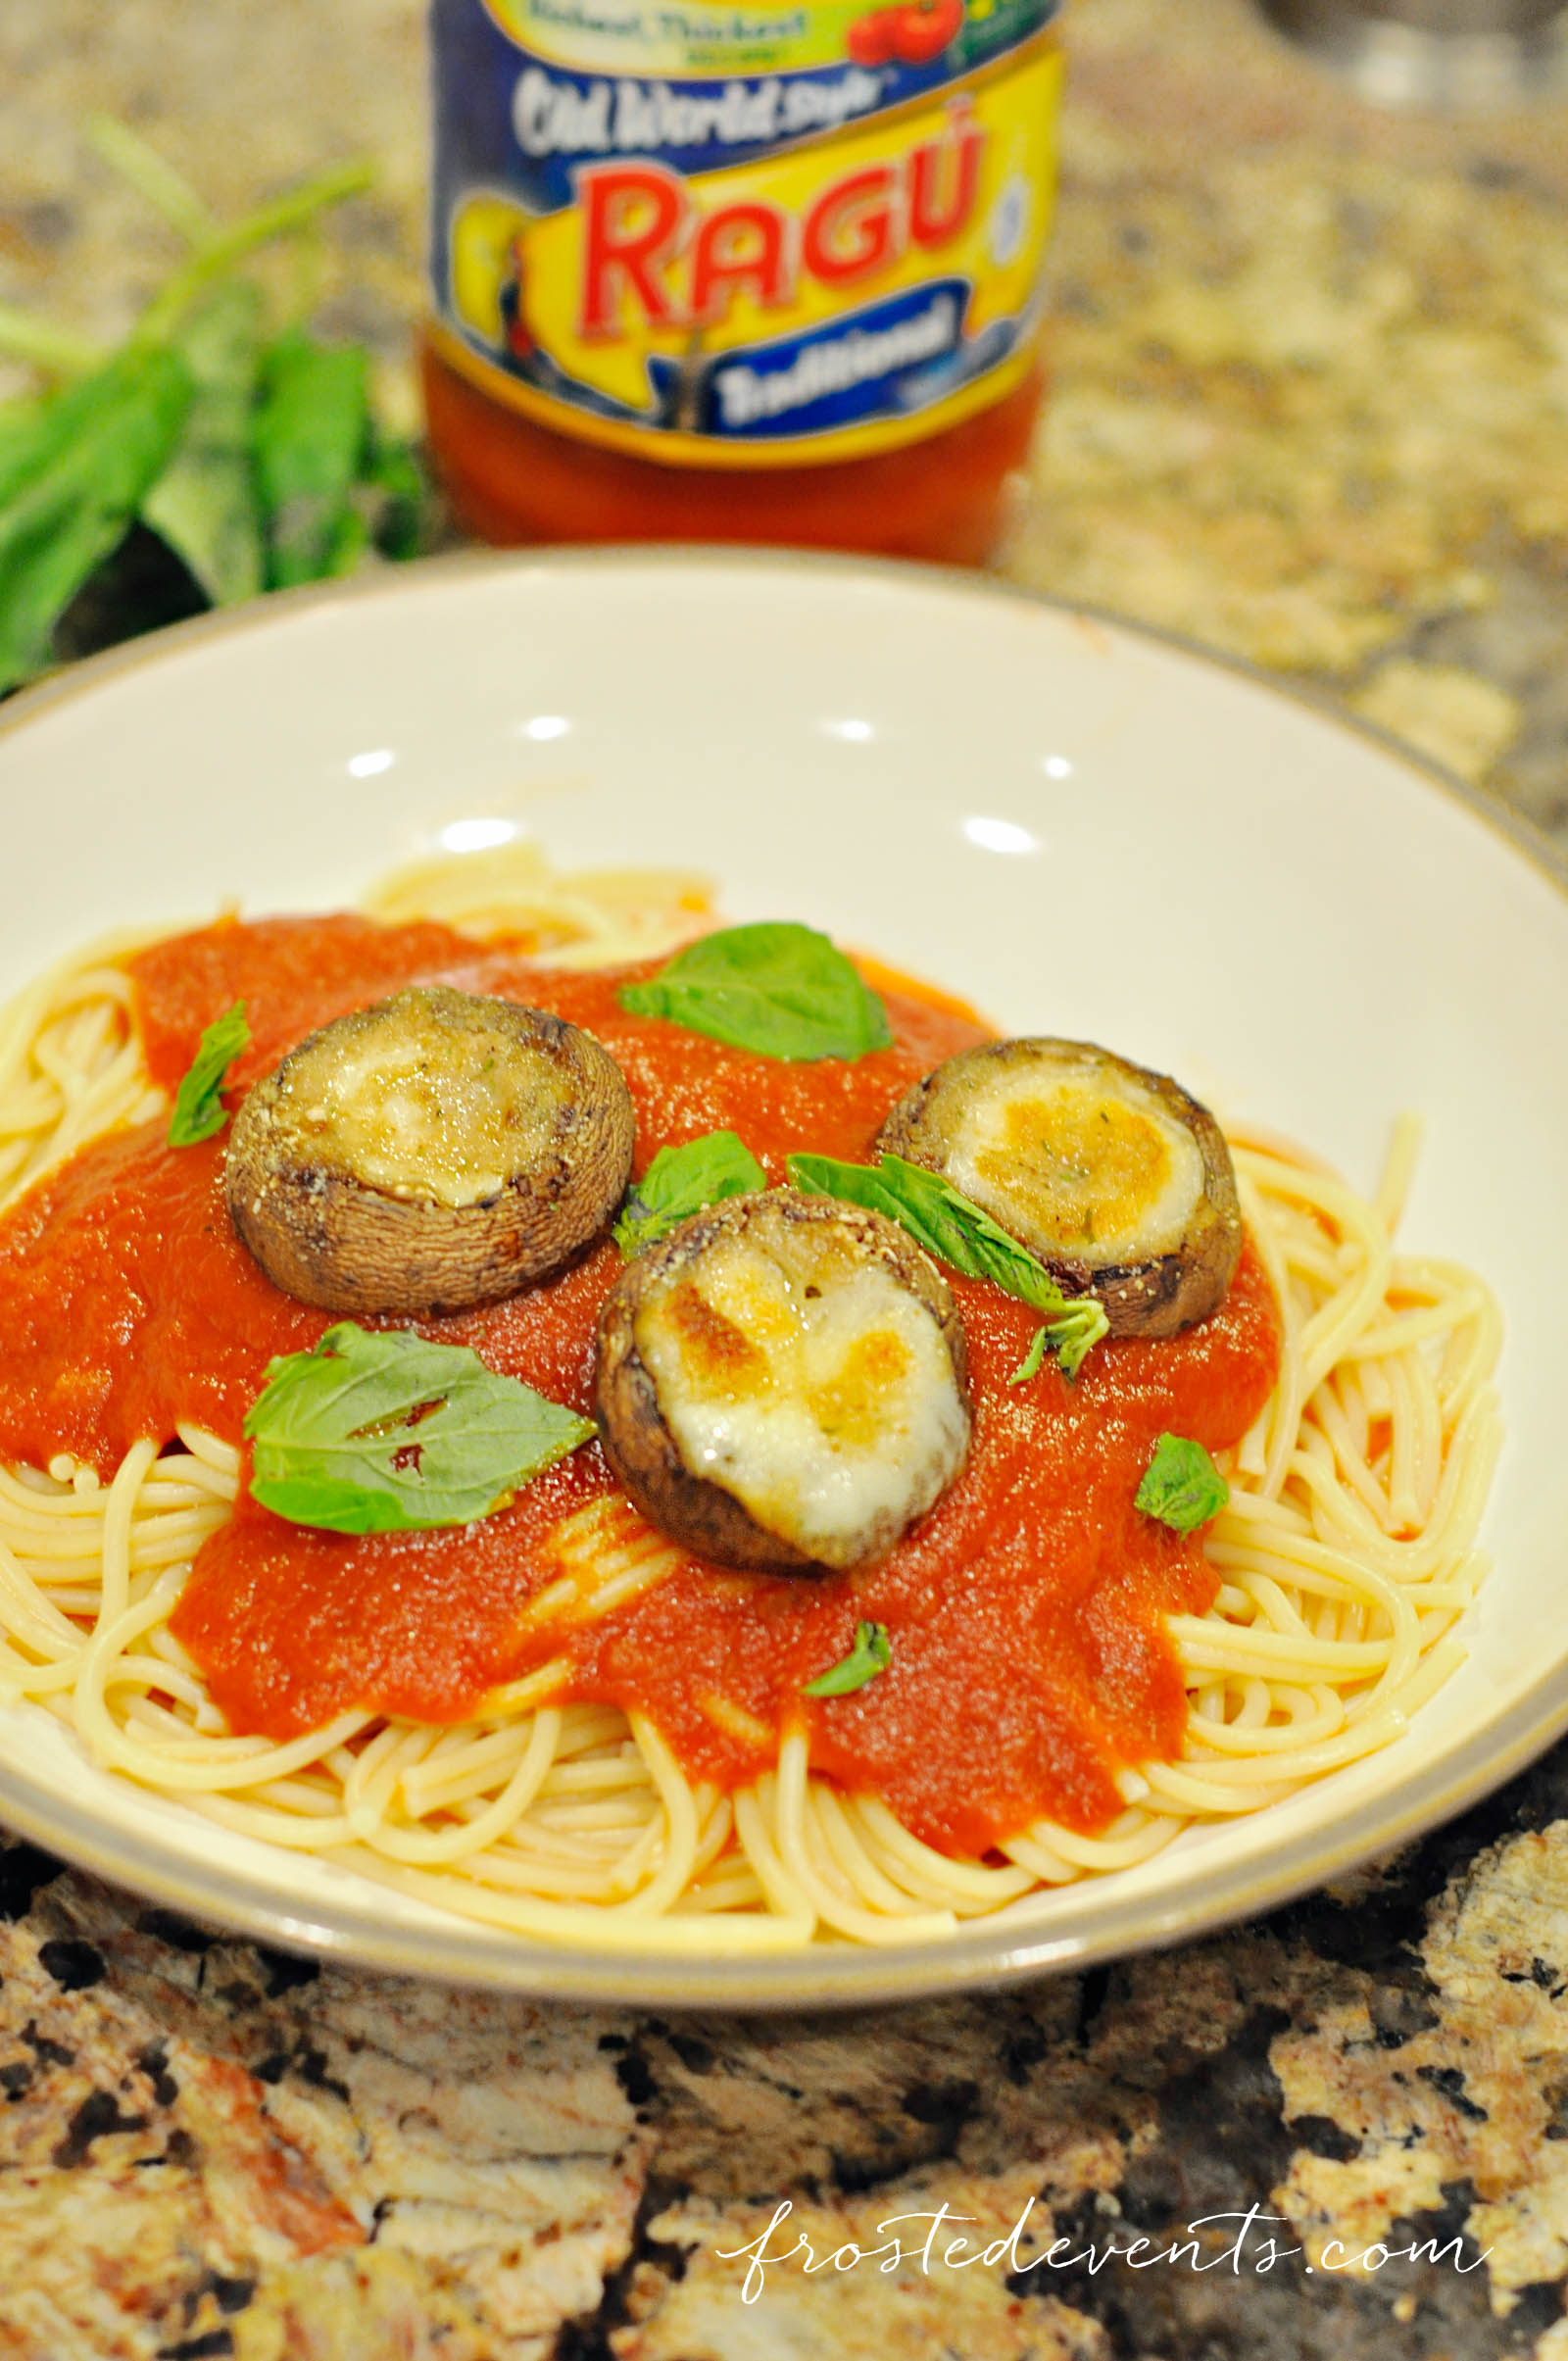 Ragu Recipe Easy Stuffed Mushrooms Recipe with Mozzarella Dinner Recipes #simmeredintradition